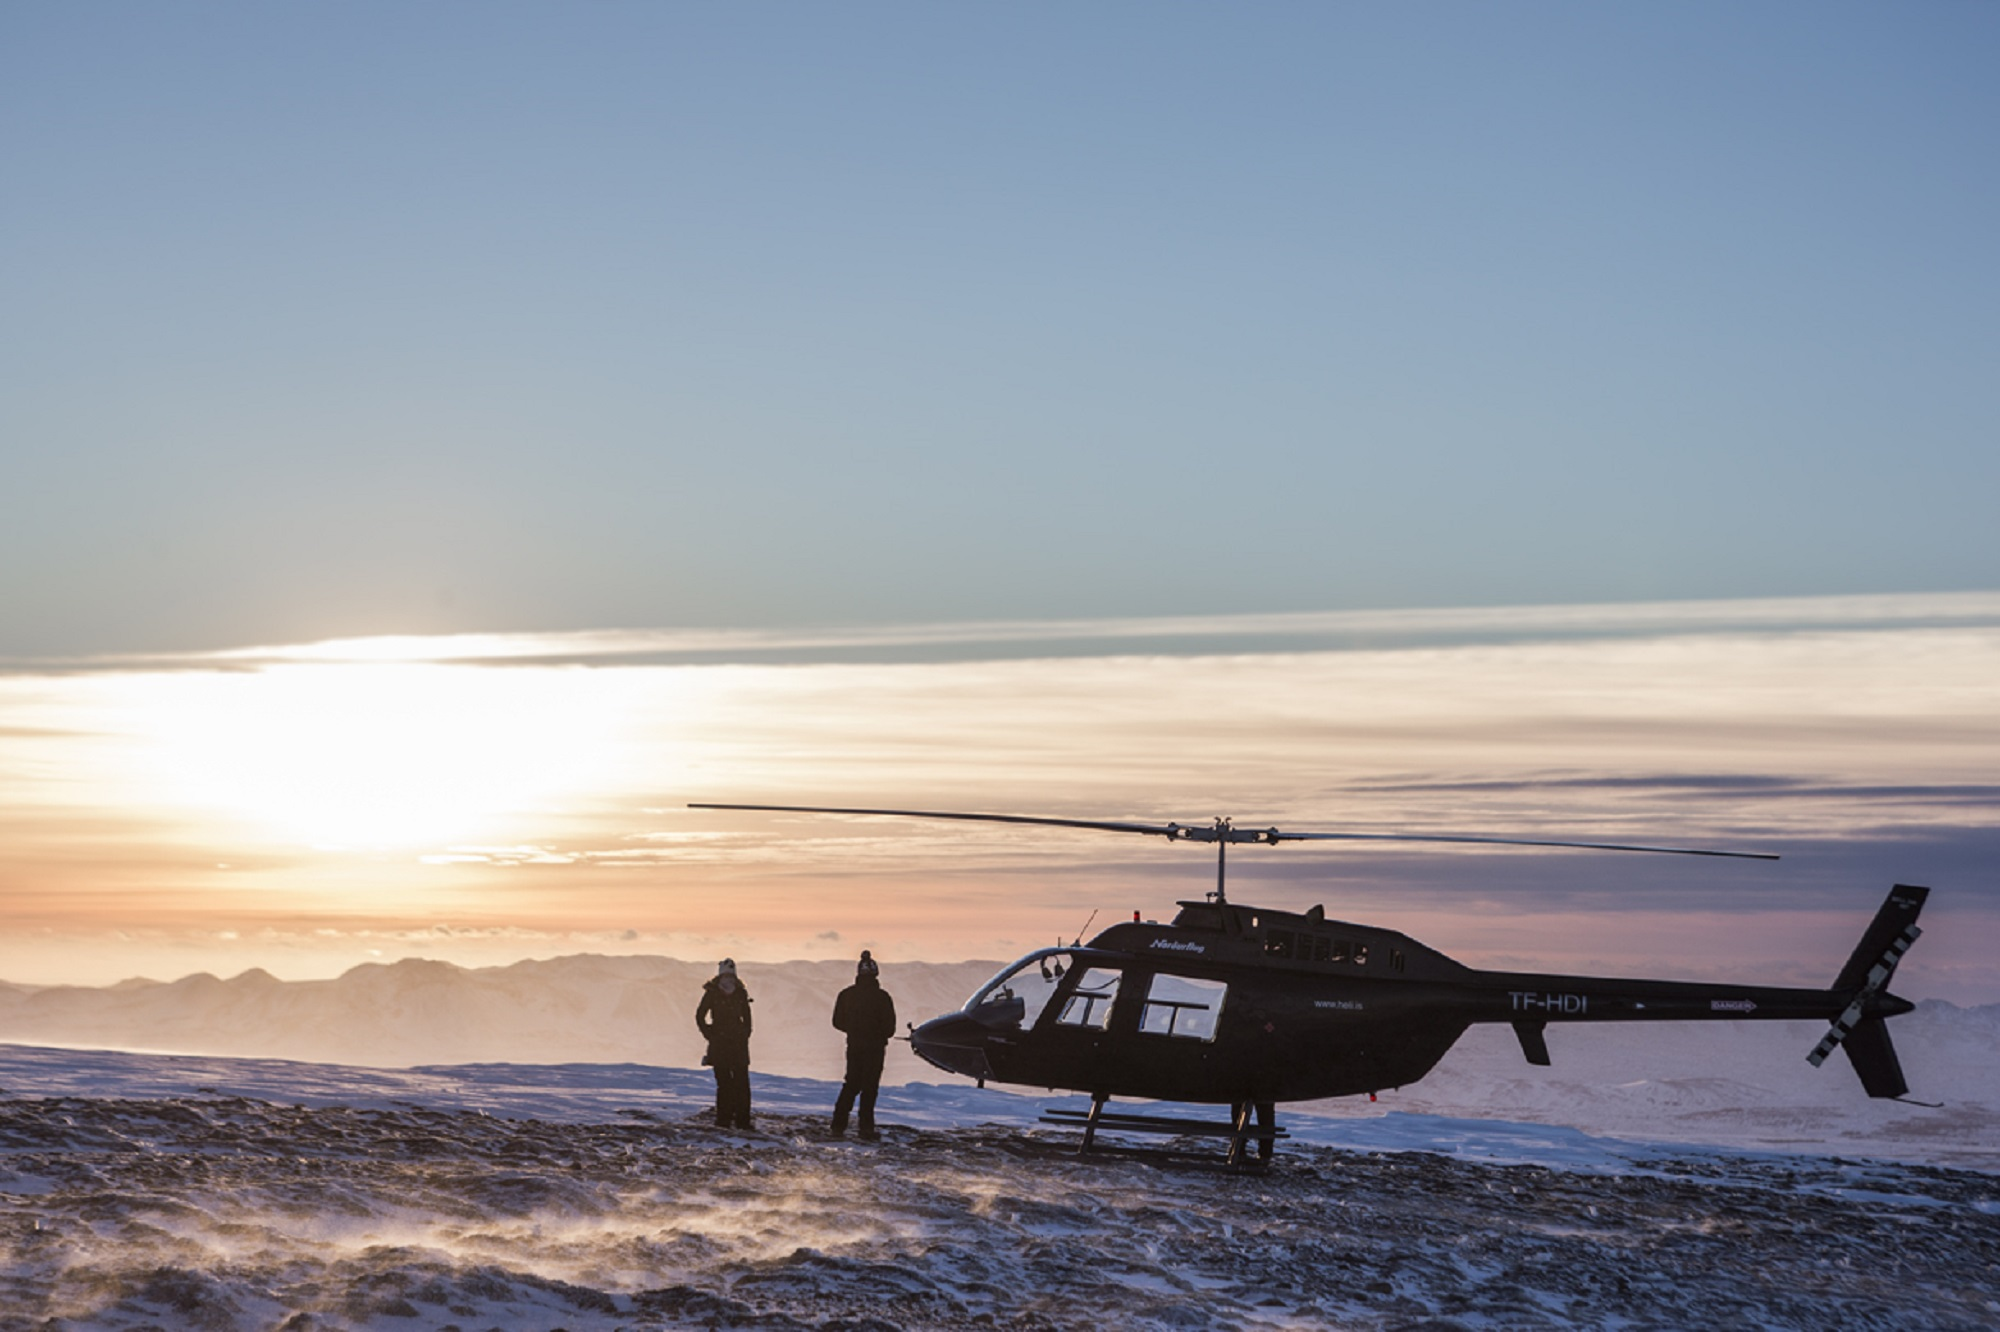 A helicopter tour is one of the most awe-inspiring activities available in Iceland.